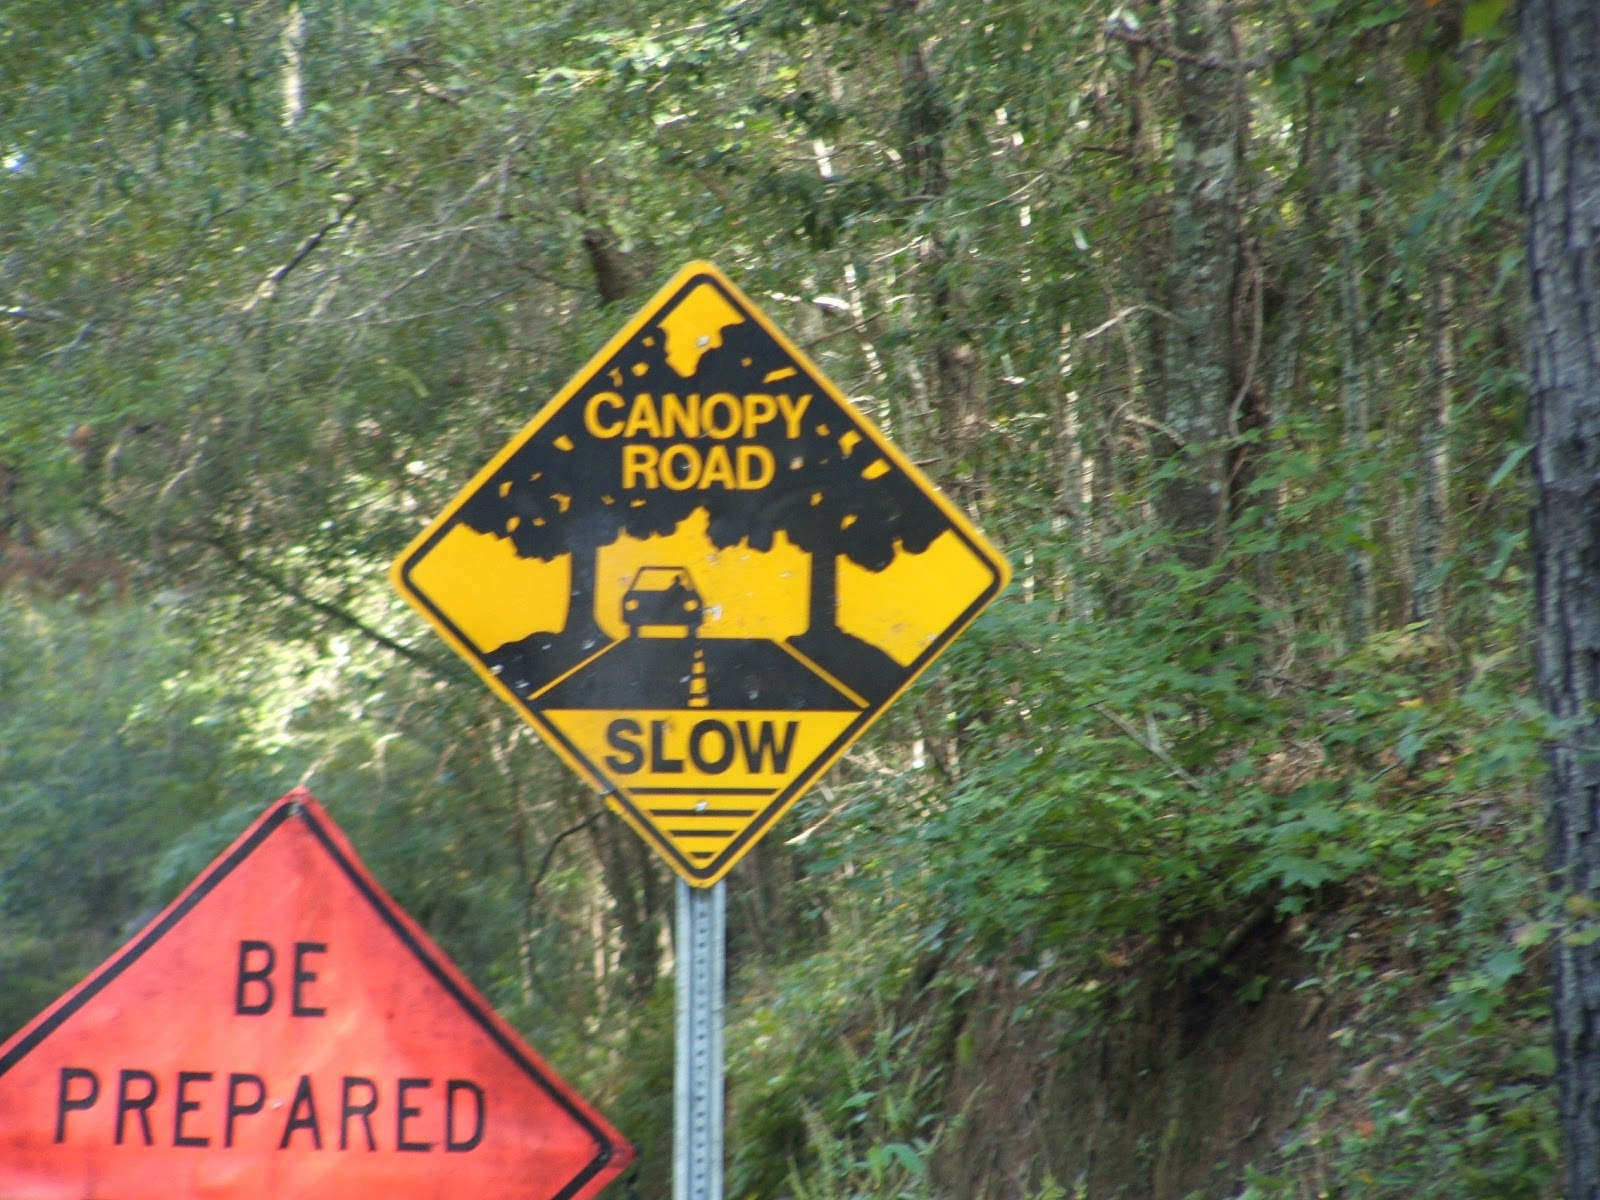 CANOPY ROADS u0026 COUNTRY LANES u2013 The Canopy Road Automobile Tours & Rediscovering Florida: CANOPY ROADS u0026 COUNTRY LANES u2013 The Canopy ...